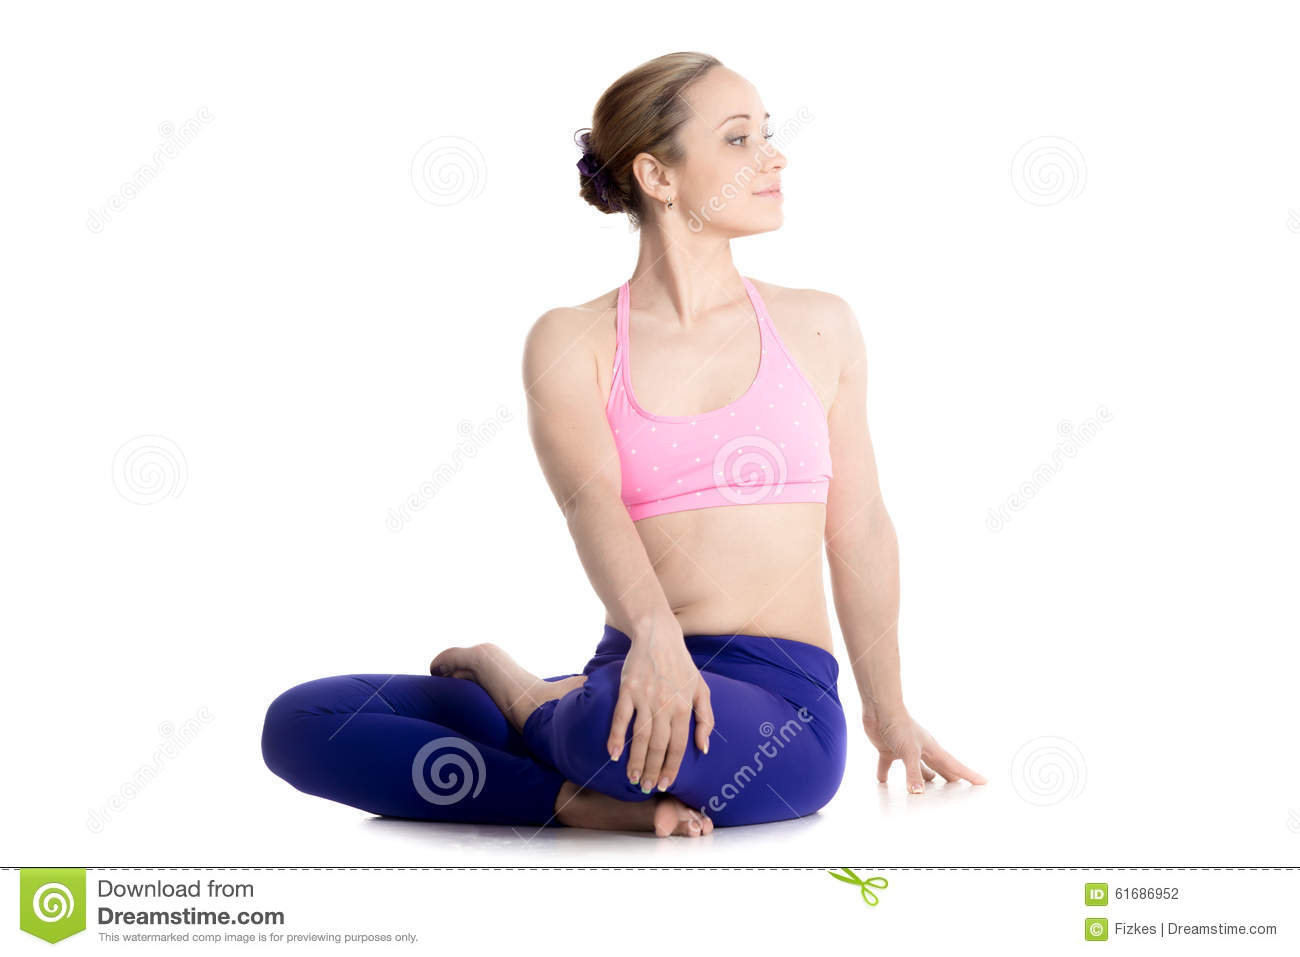 Lotus pose is a guarantee of health 60